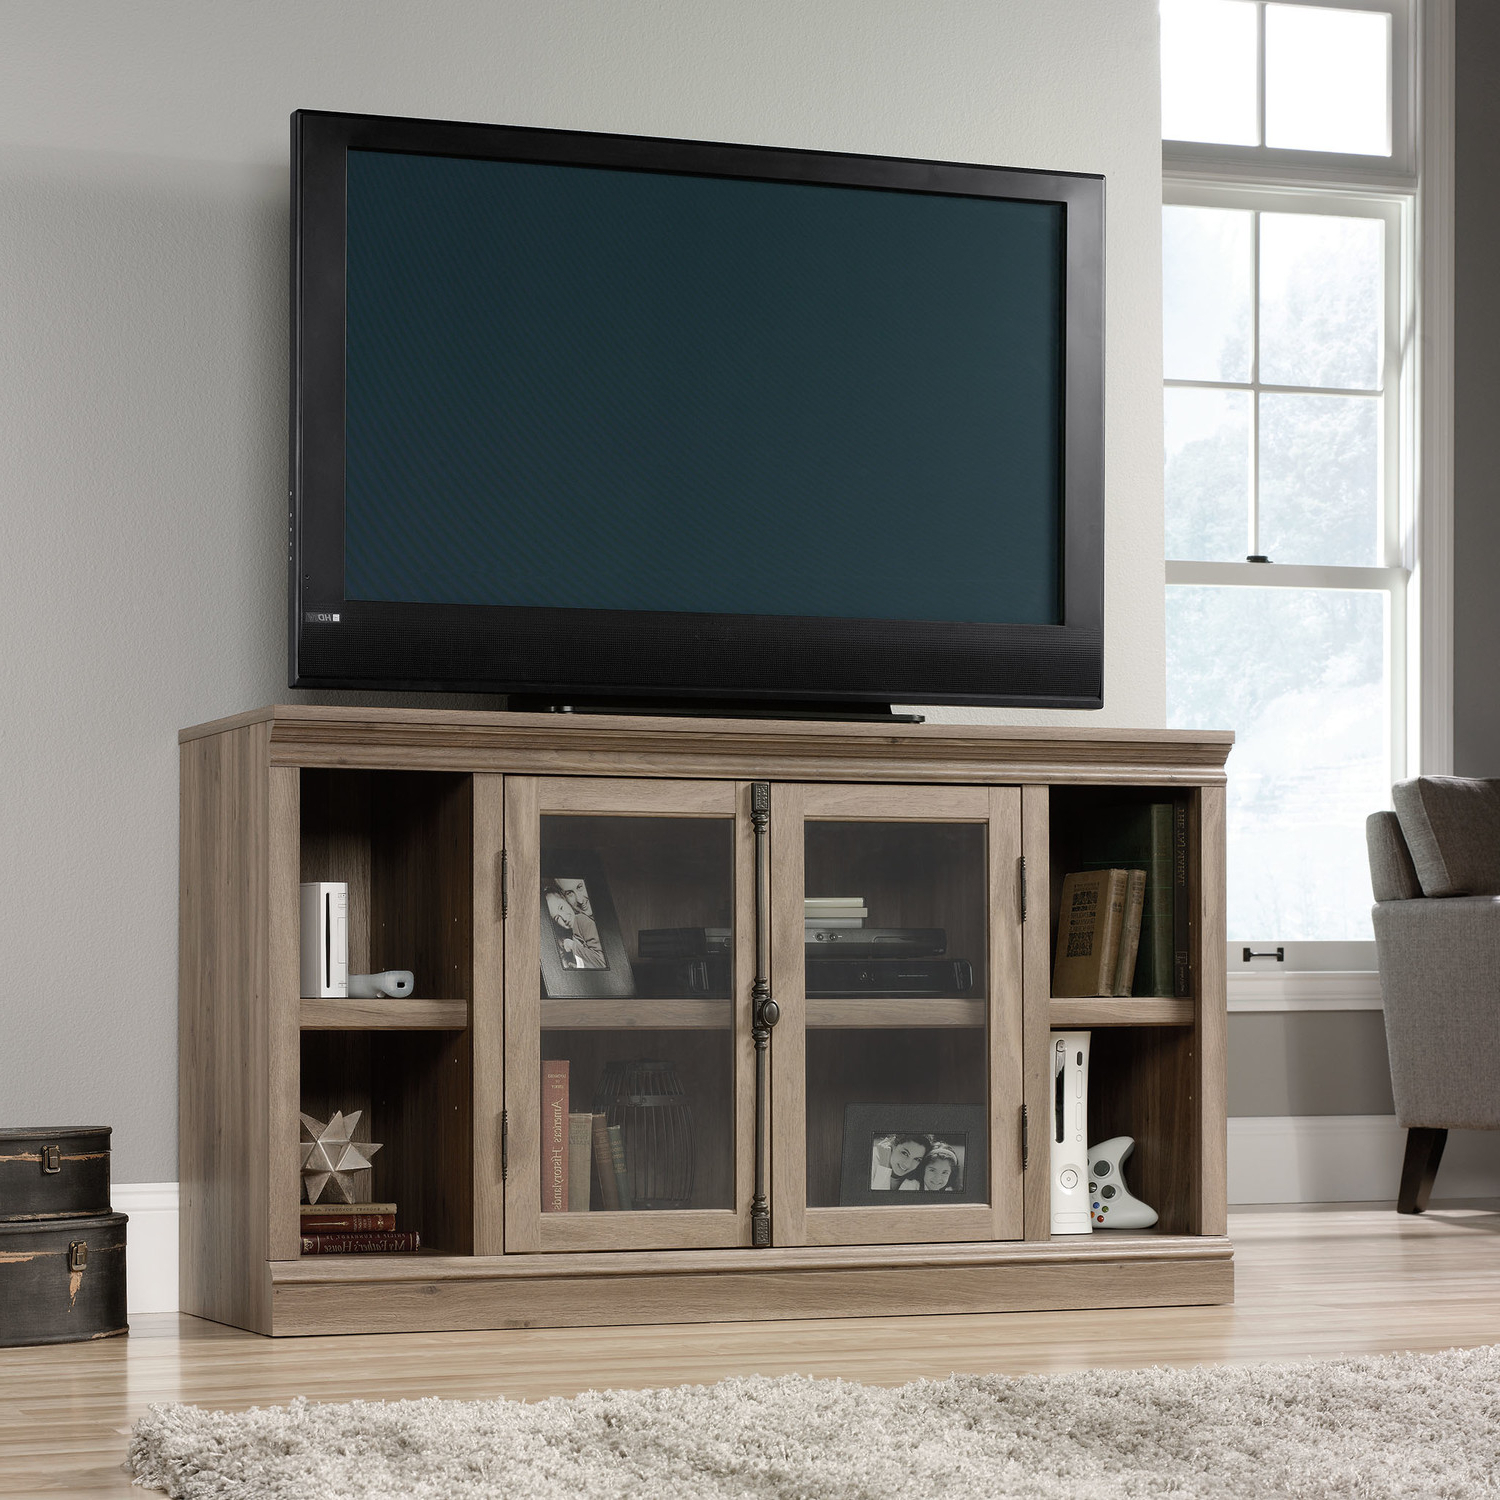 Rustic Tv Stands With 2018 Rustic Tv Stand Decor 2017 — Home Decorcoppercreekgroup (View 14 of 20)